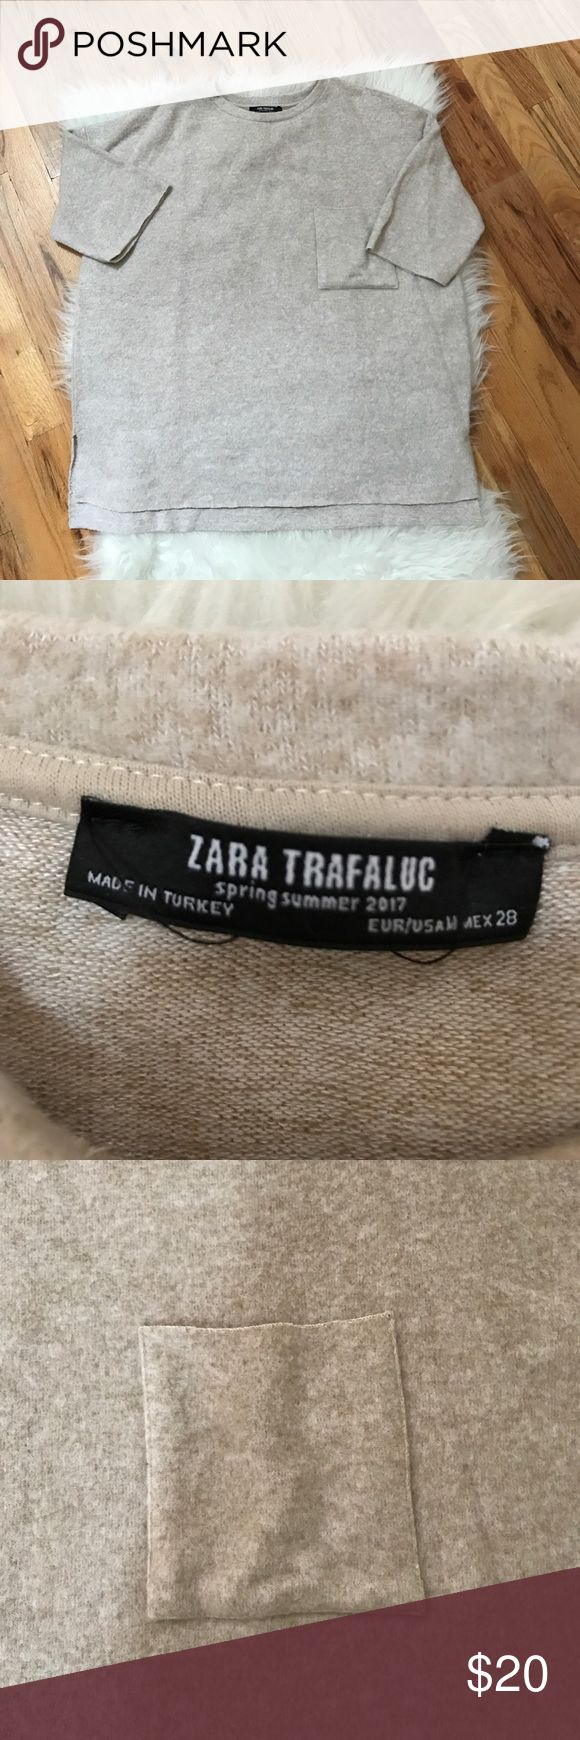 Zara Spring/Summer 2017 top This is a warm Zara short sleeve top. Feels like a brushed, soft material.  Sleeves have a natural cut look as does the bottom. Back is slightly longer than the front. EUC with no signs of wear. Measurements are approximate: armpit to armpit 23 1/2, length:  front 24 inches, back 25 inches.  Great for the fall or under a cardi in the winter. Neutral tan color. Zara Tops Tees - Short Sleeve